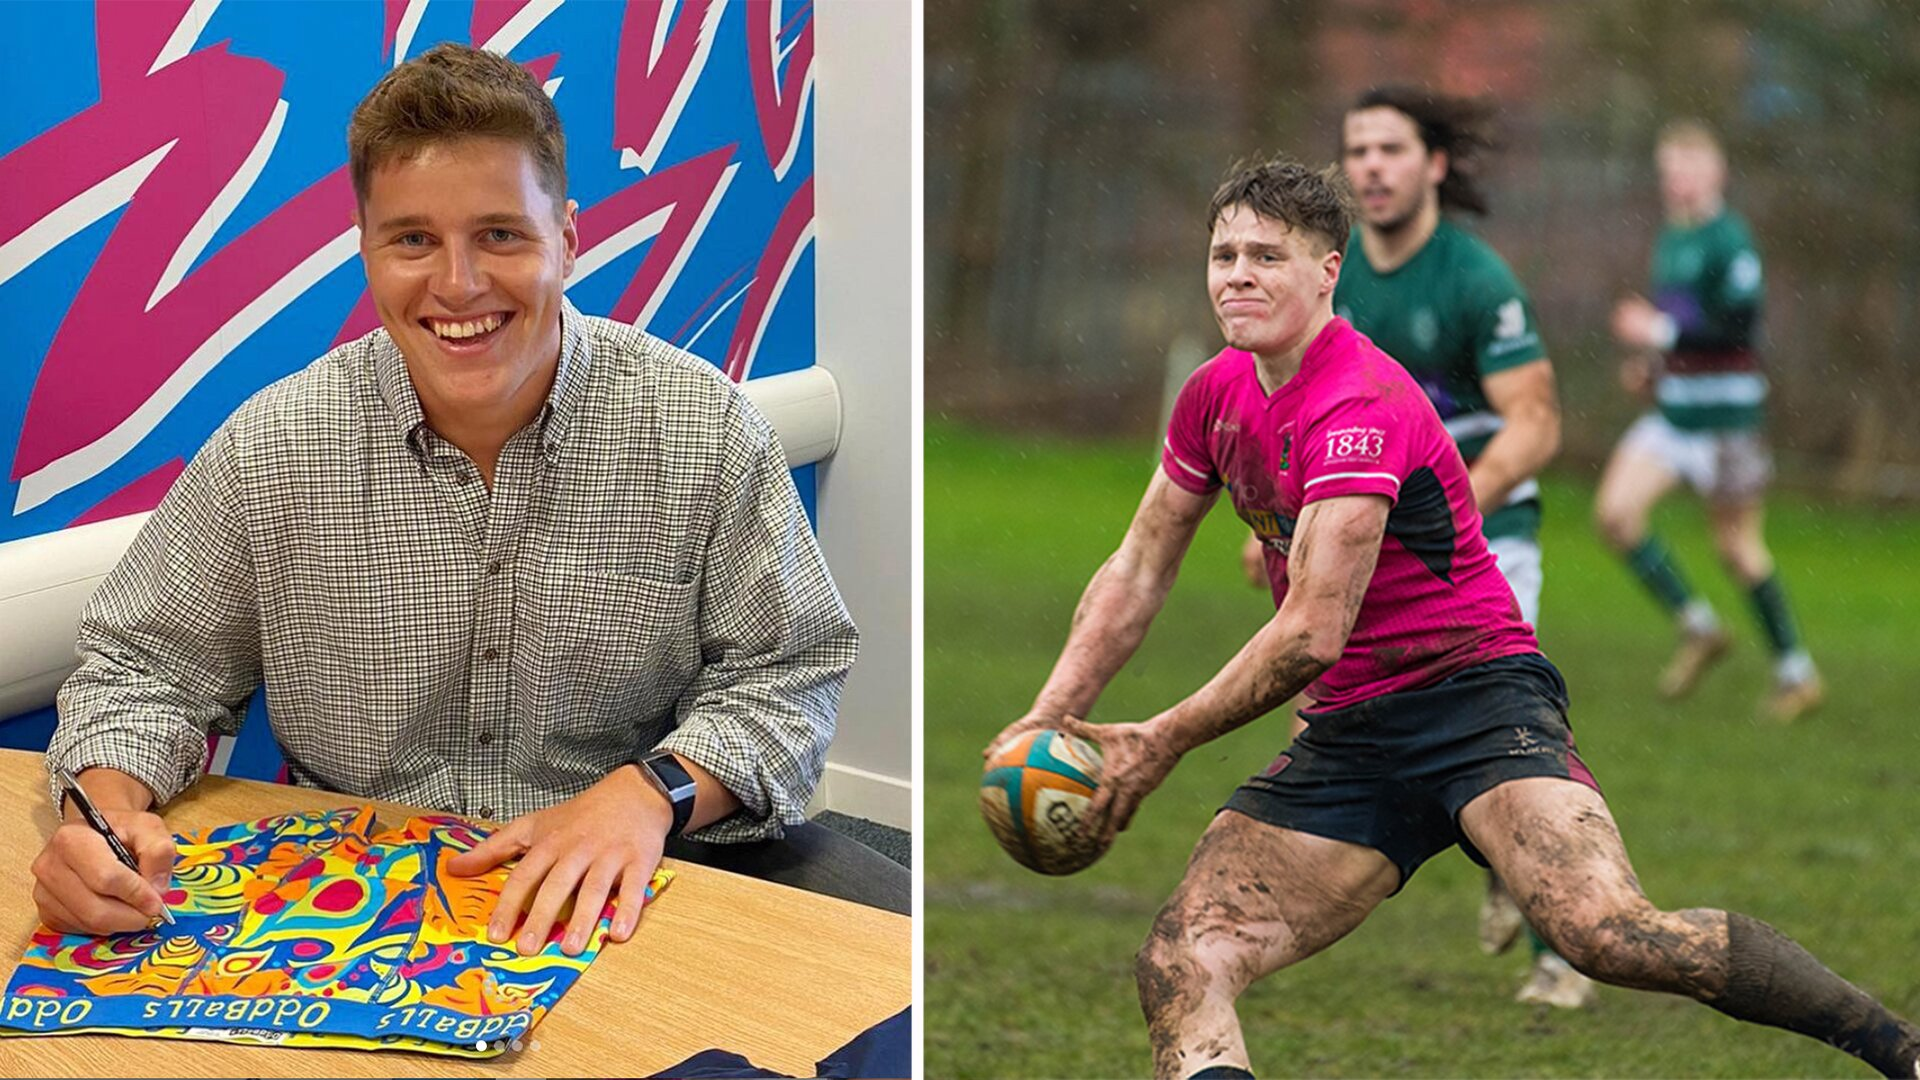 Outpouring of tributes for young rugby player Tom Miller who dies tragically just as he signs for professional club